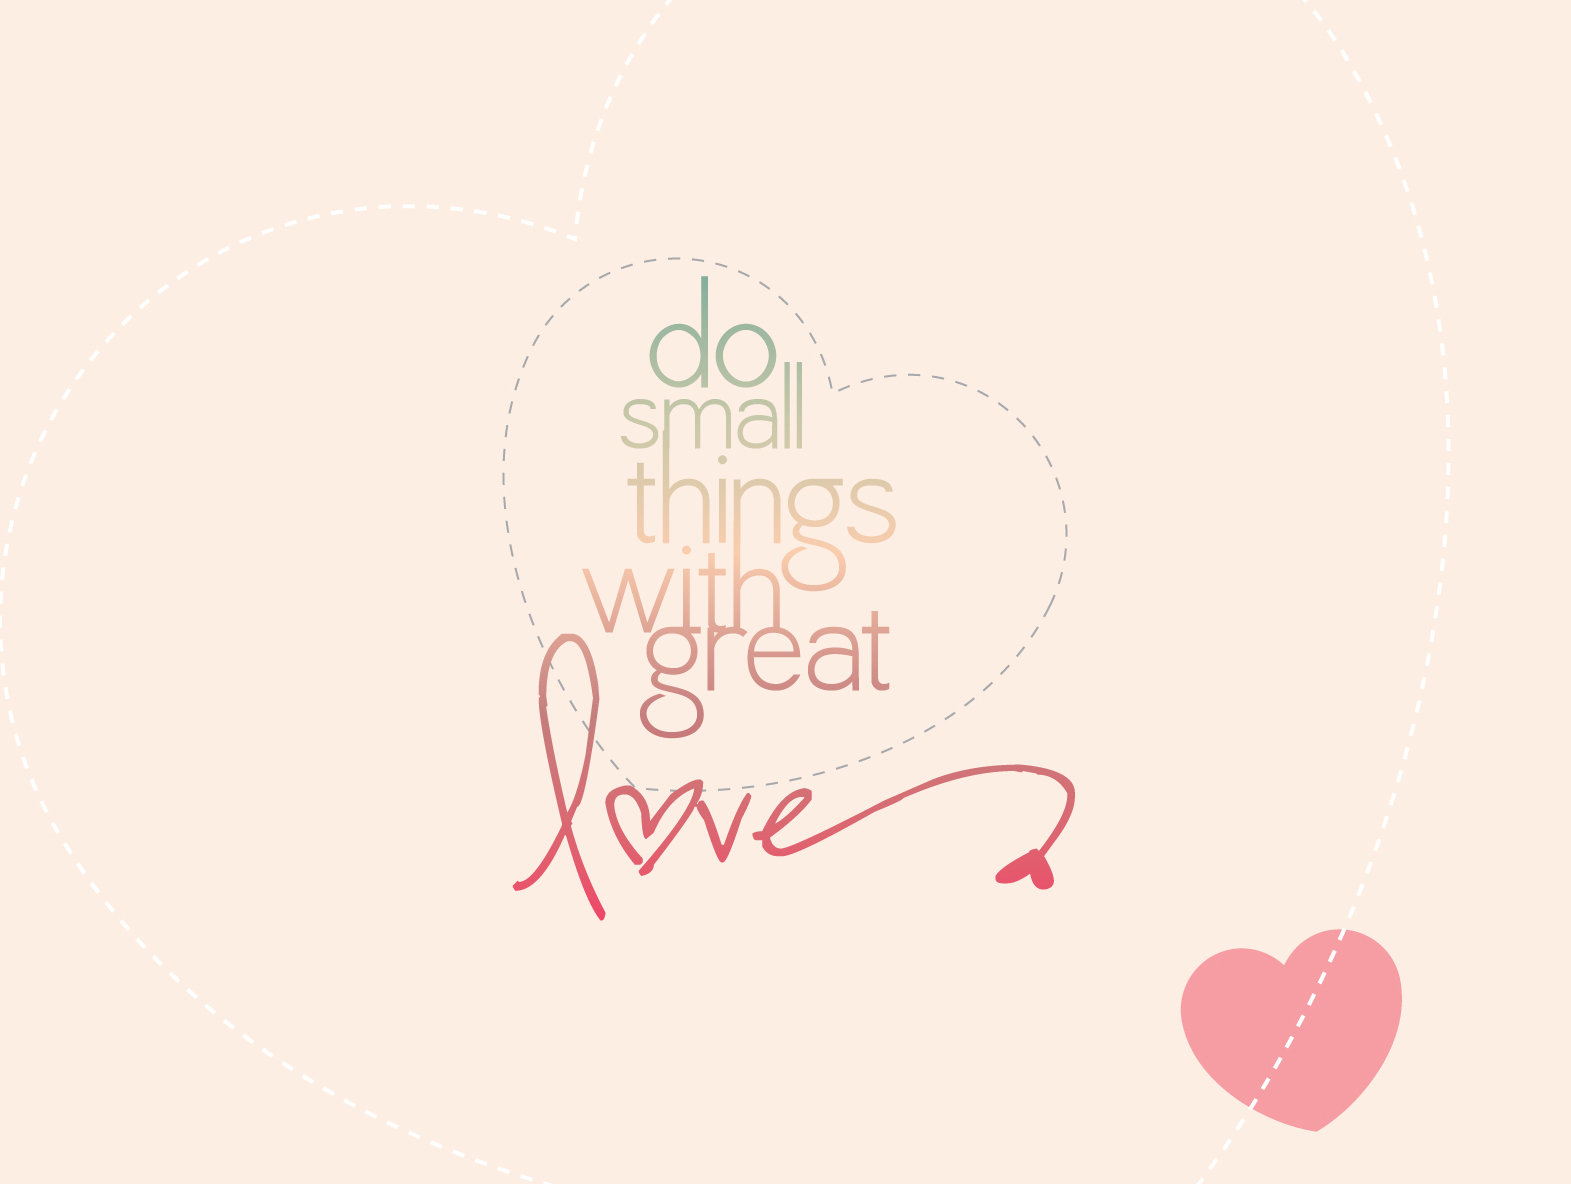 Cute Love Quotes Wallpapers Wallpapertag: Agape Love Designs: Do Small Things With Great Love